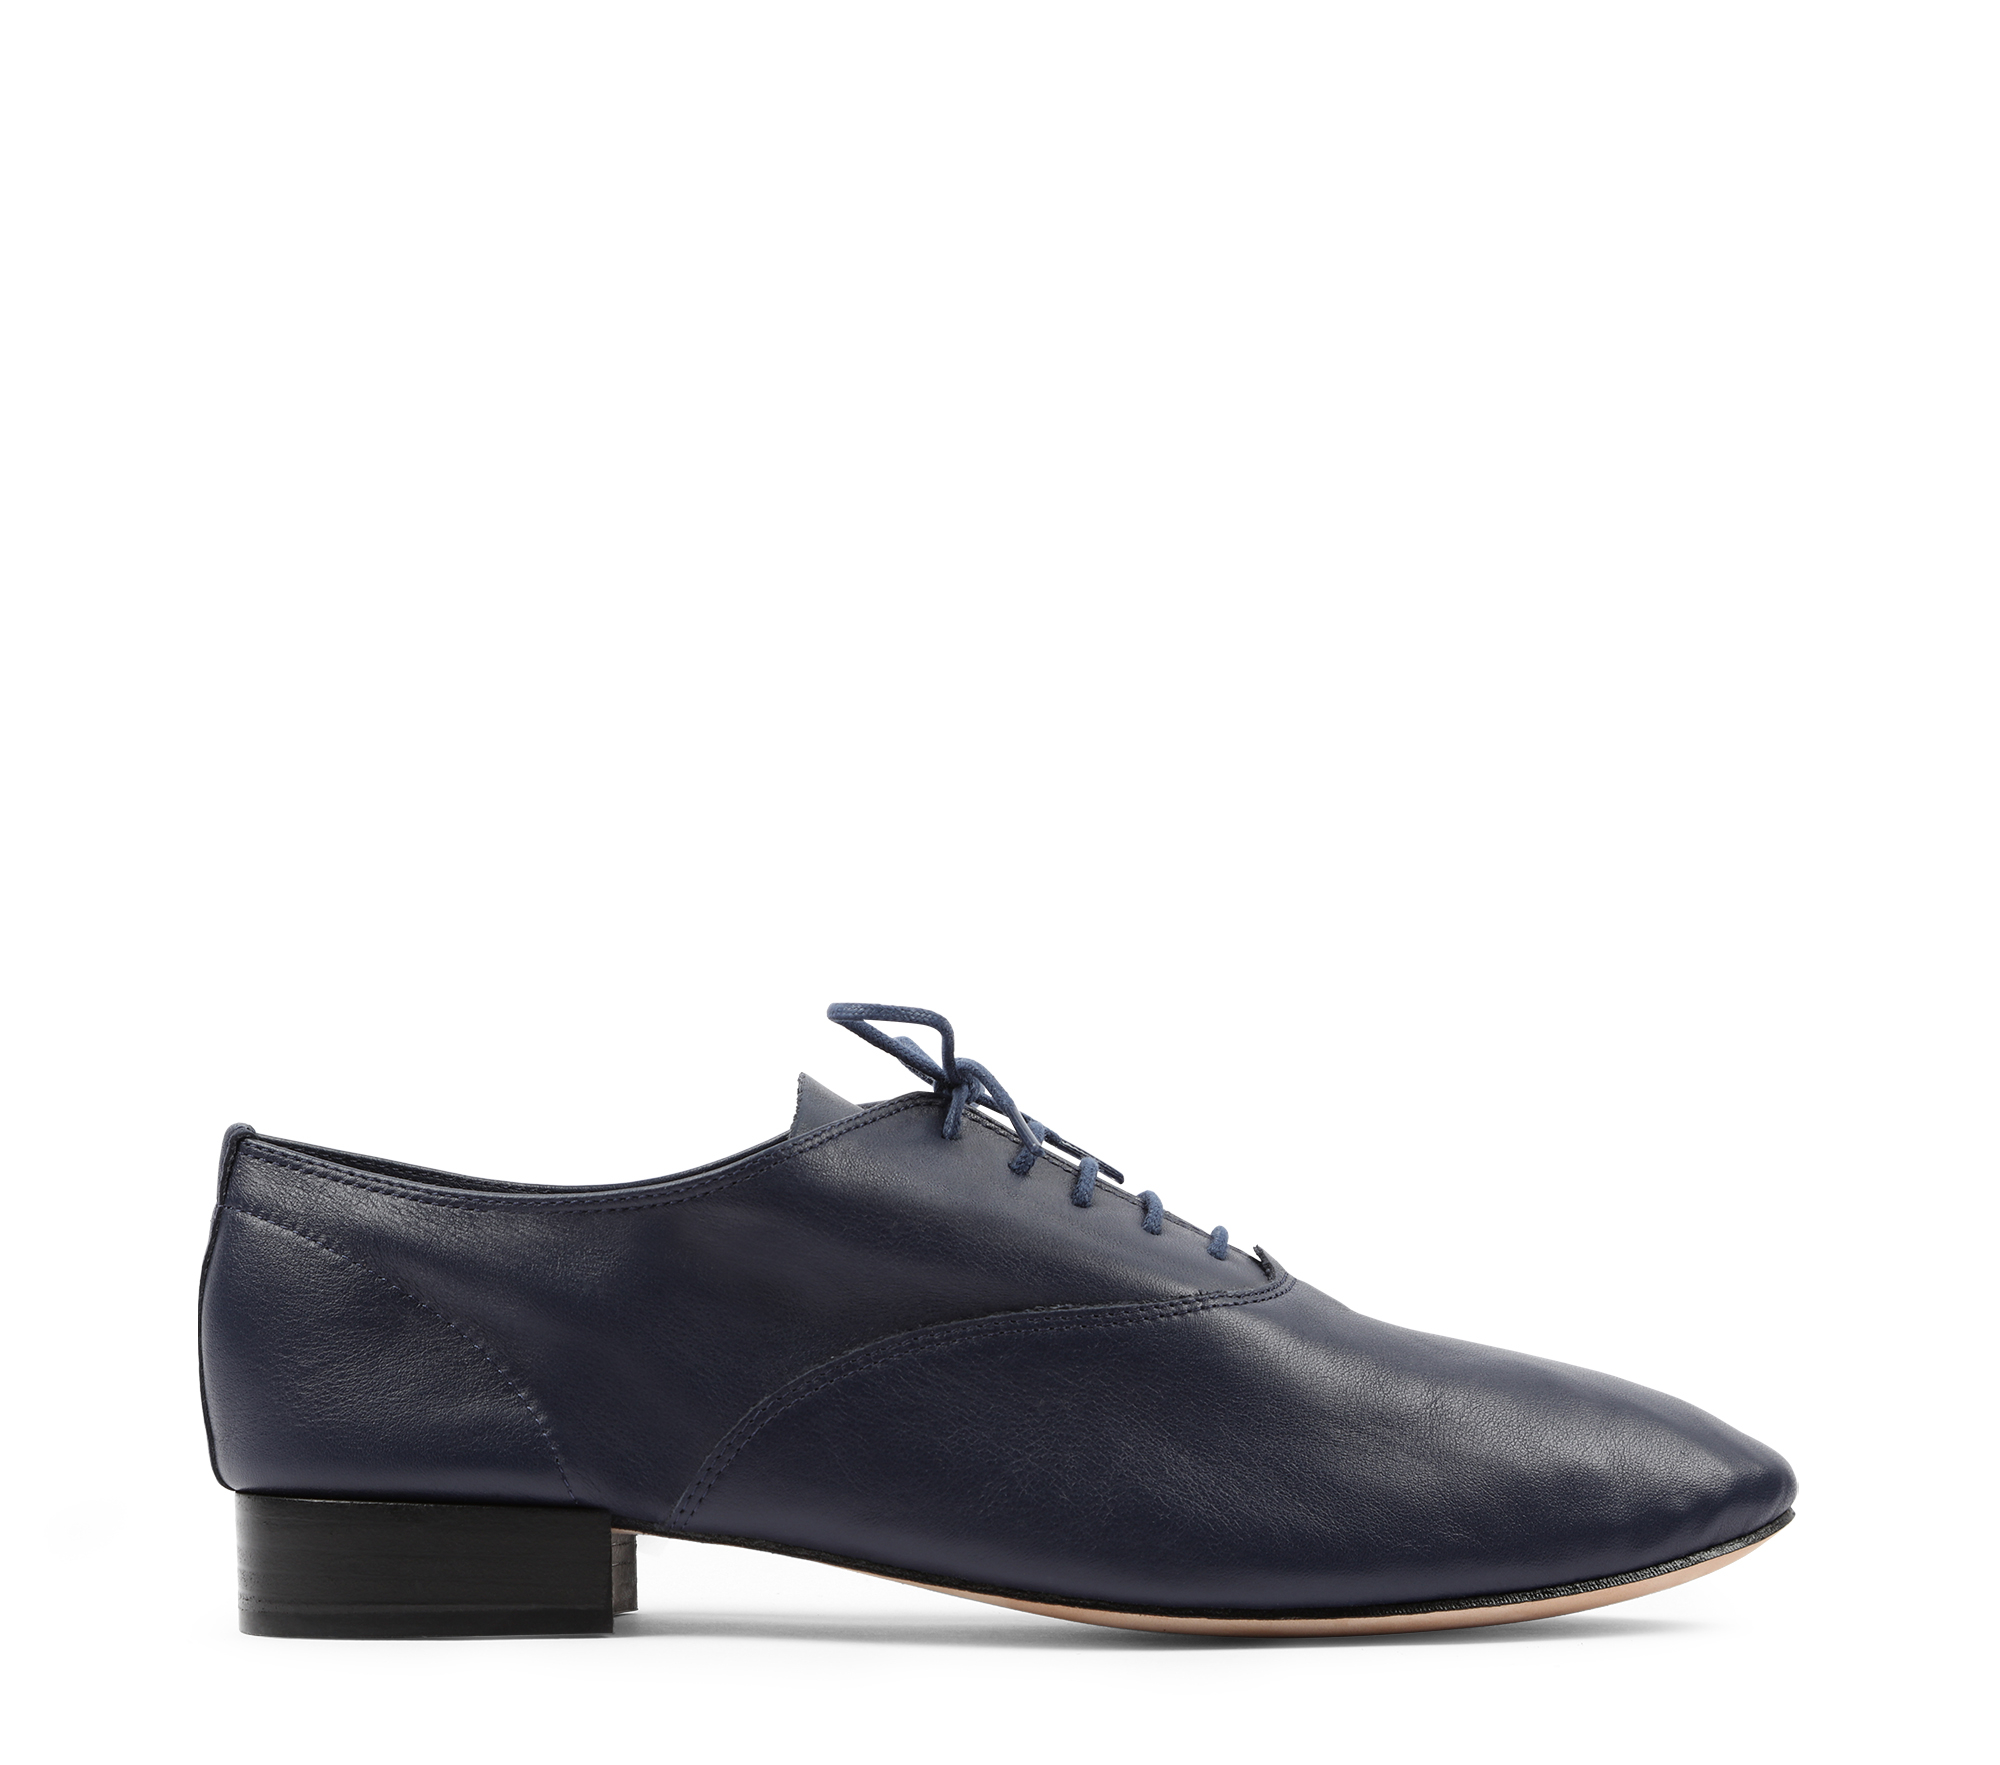 Zizi oxford shoes - Man